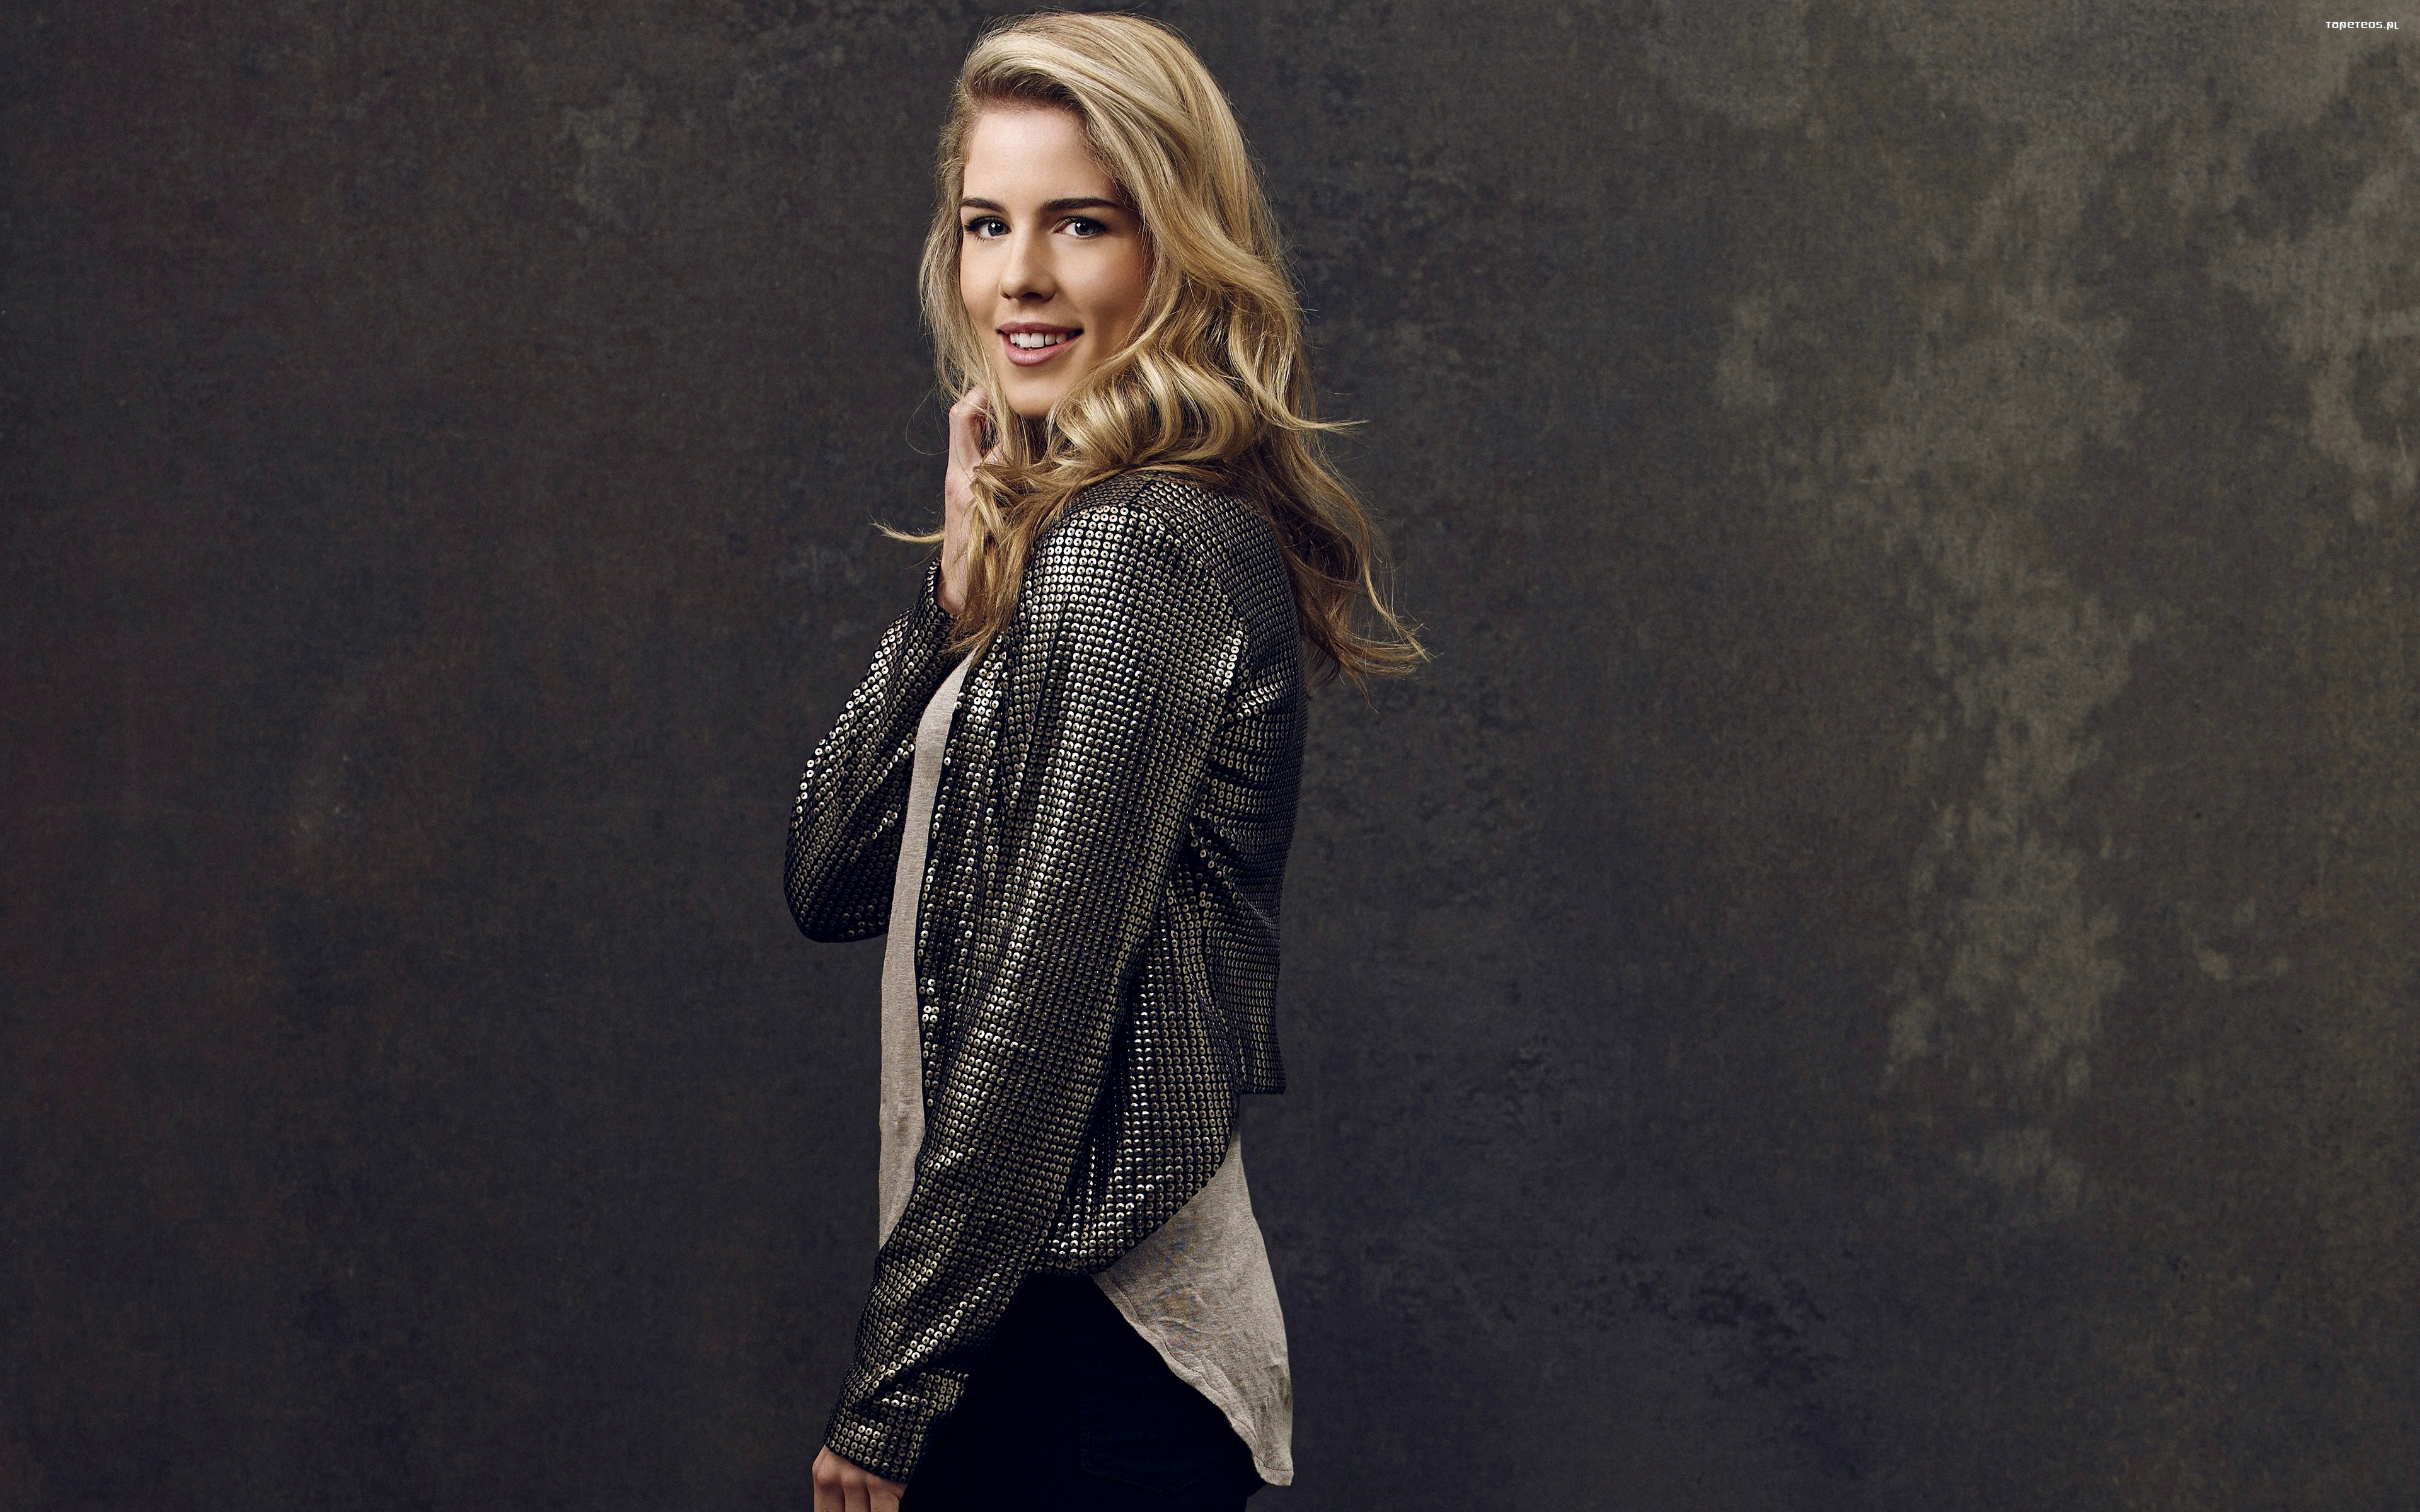 Arrow 033 Emily Bett Rickards, Felicity Smoak